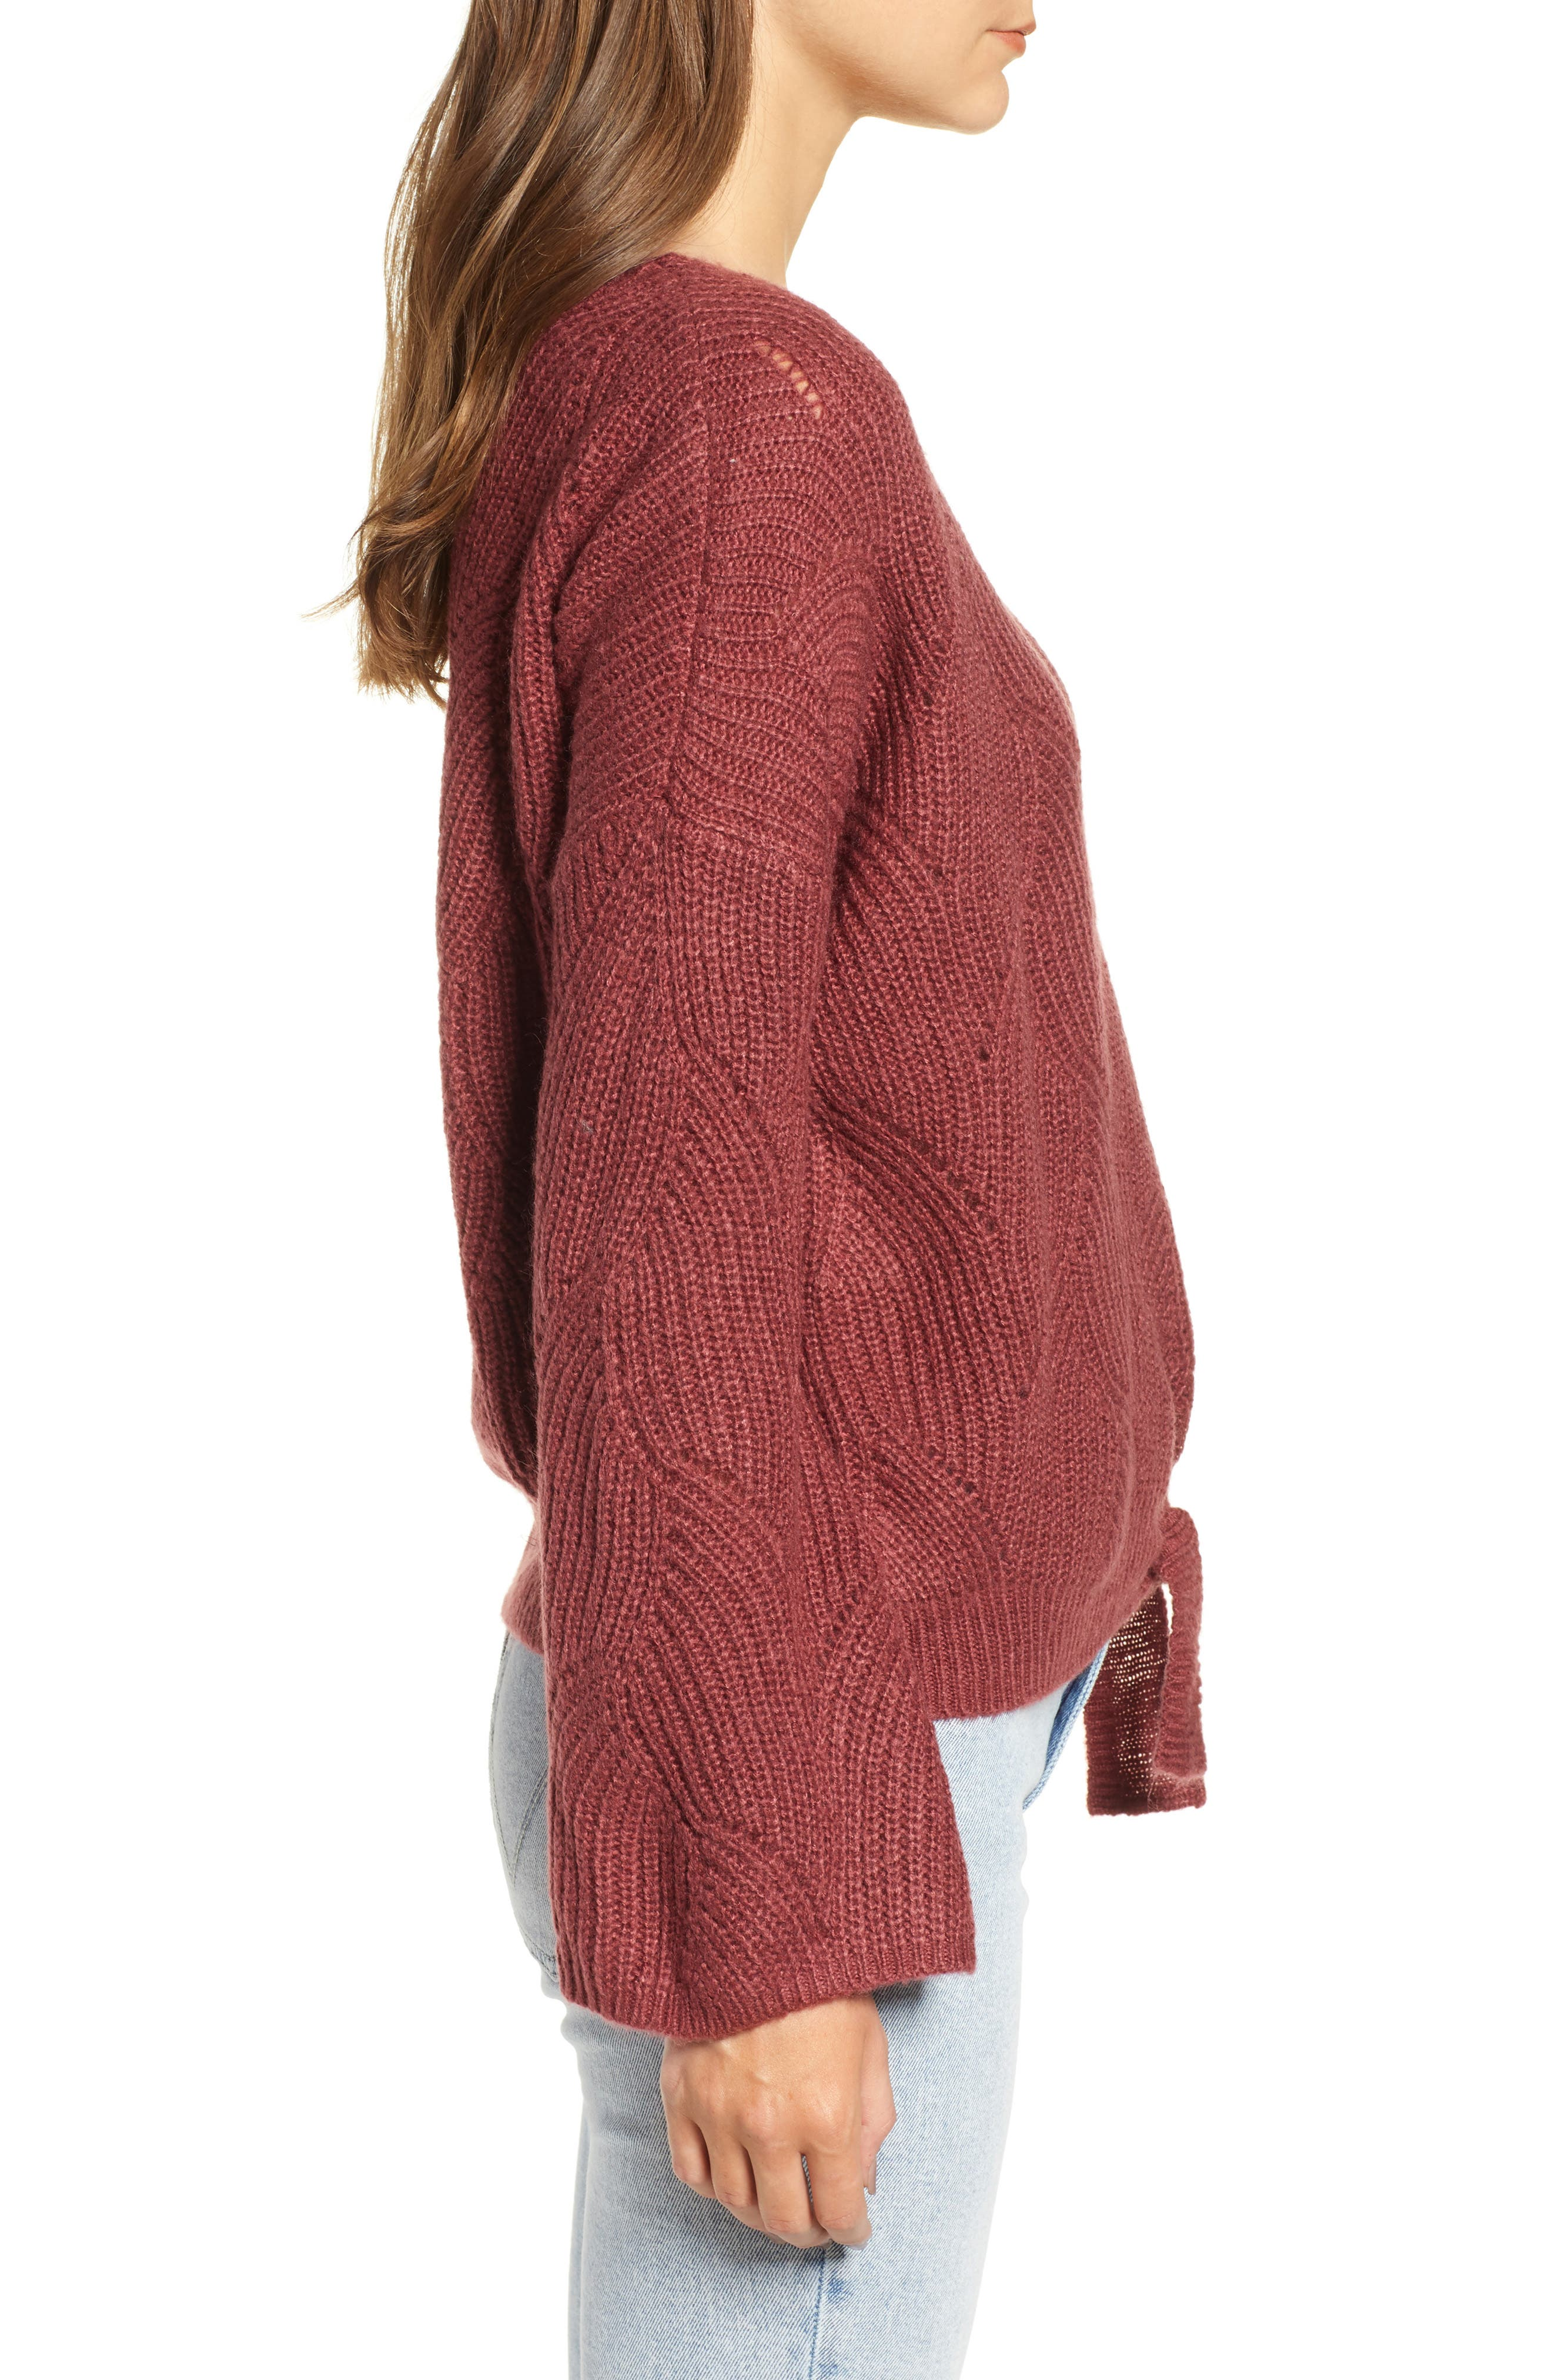 See You In Bali Sweater,                             Alternate thumbnail 3, color,                             OXBLOOD RED